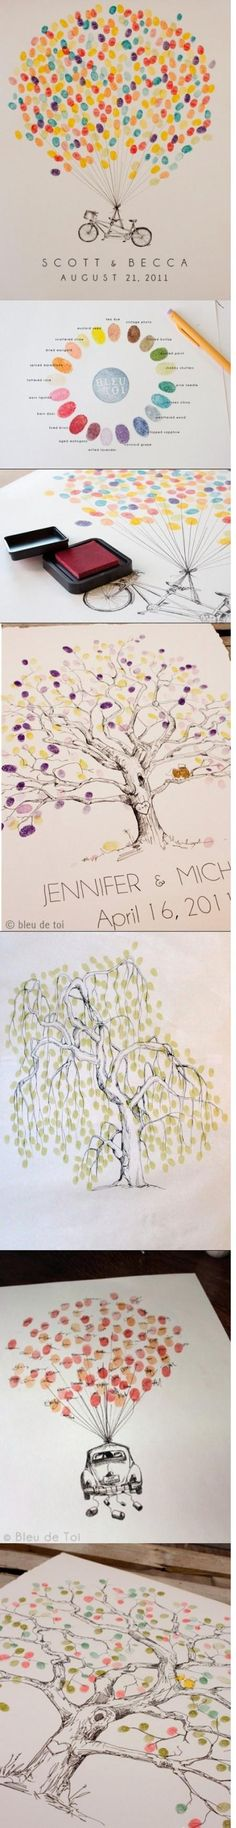 Fab invite ideas!